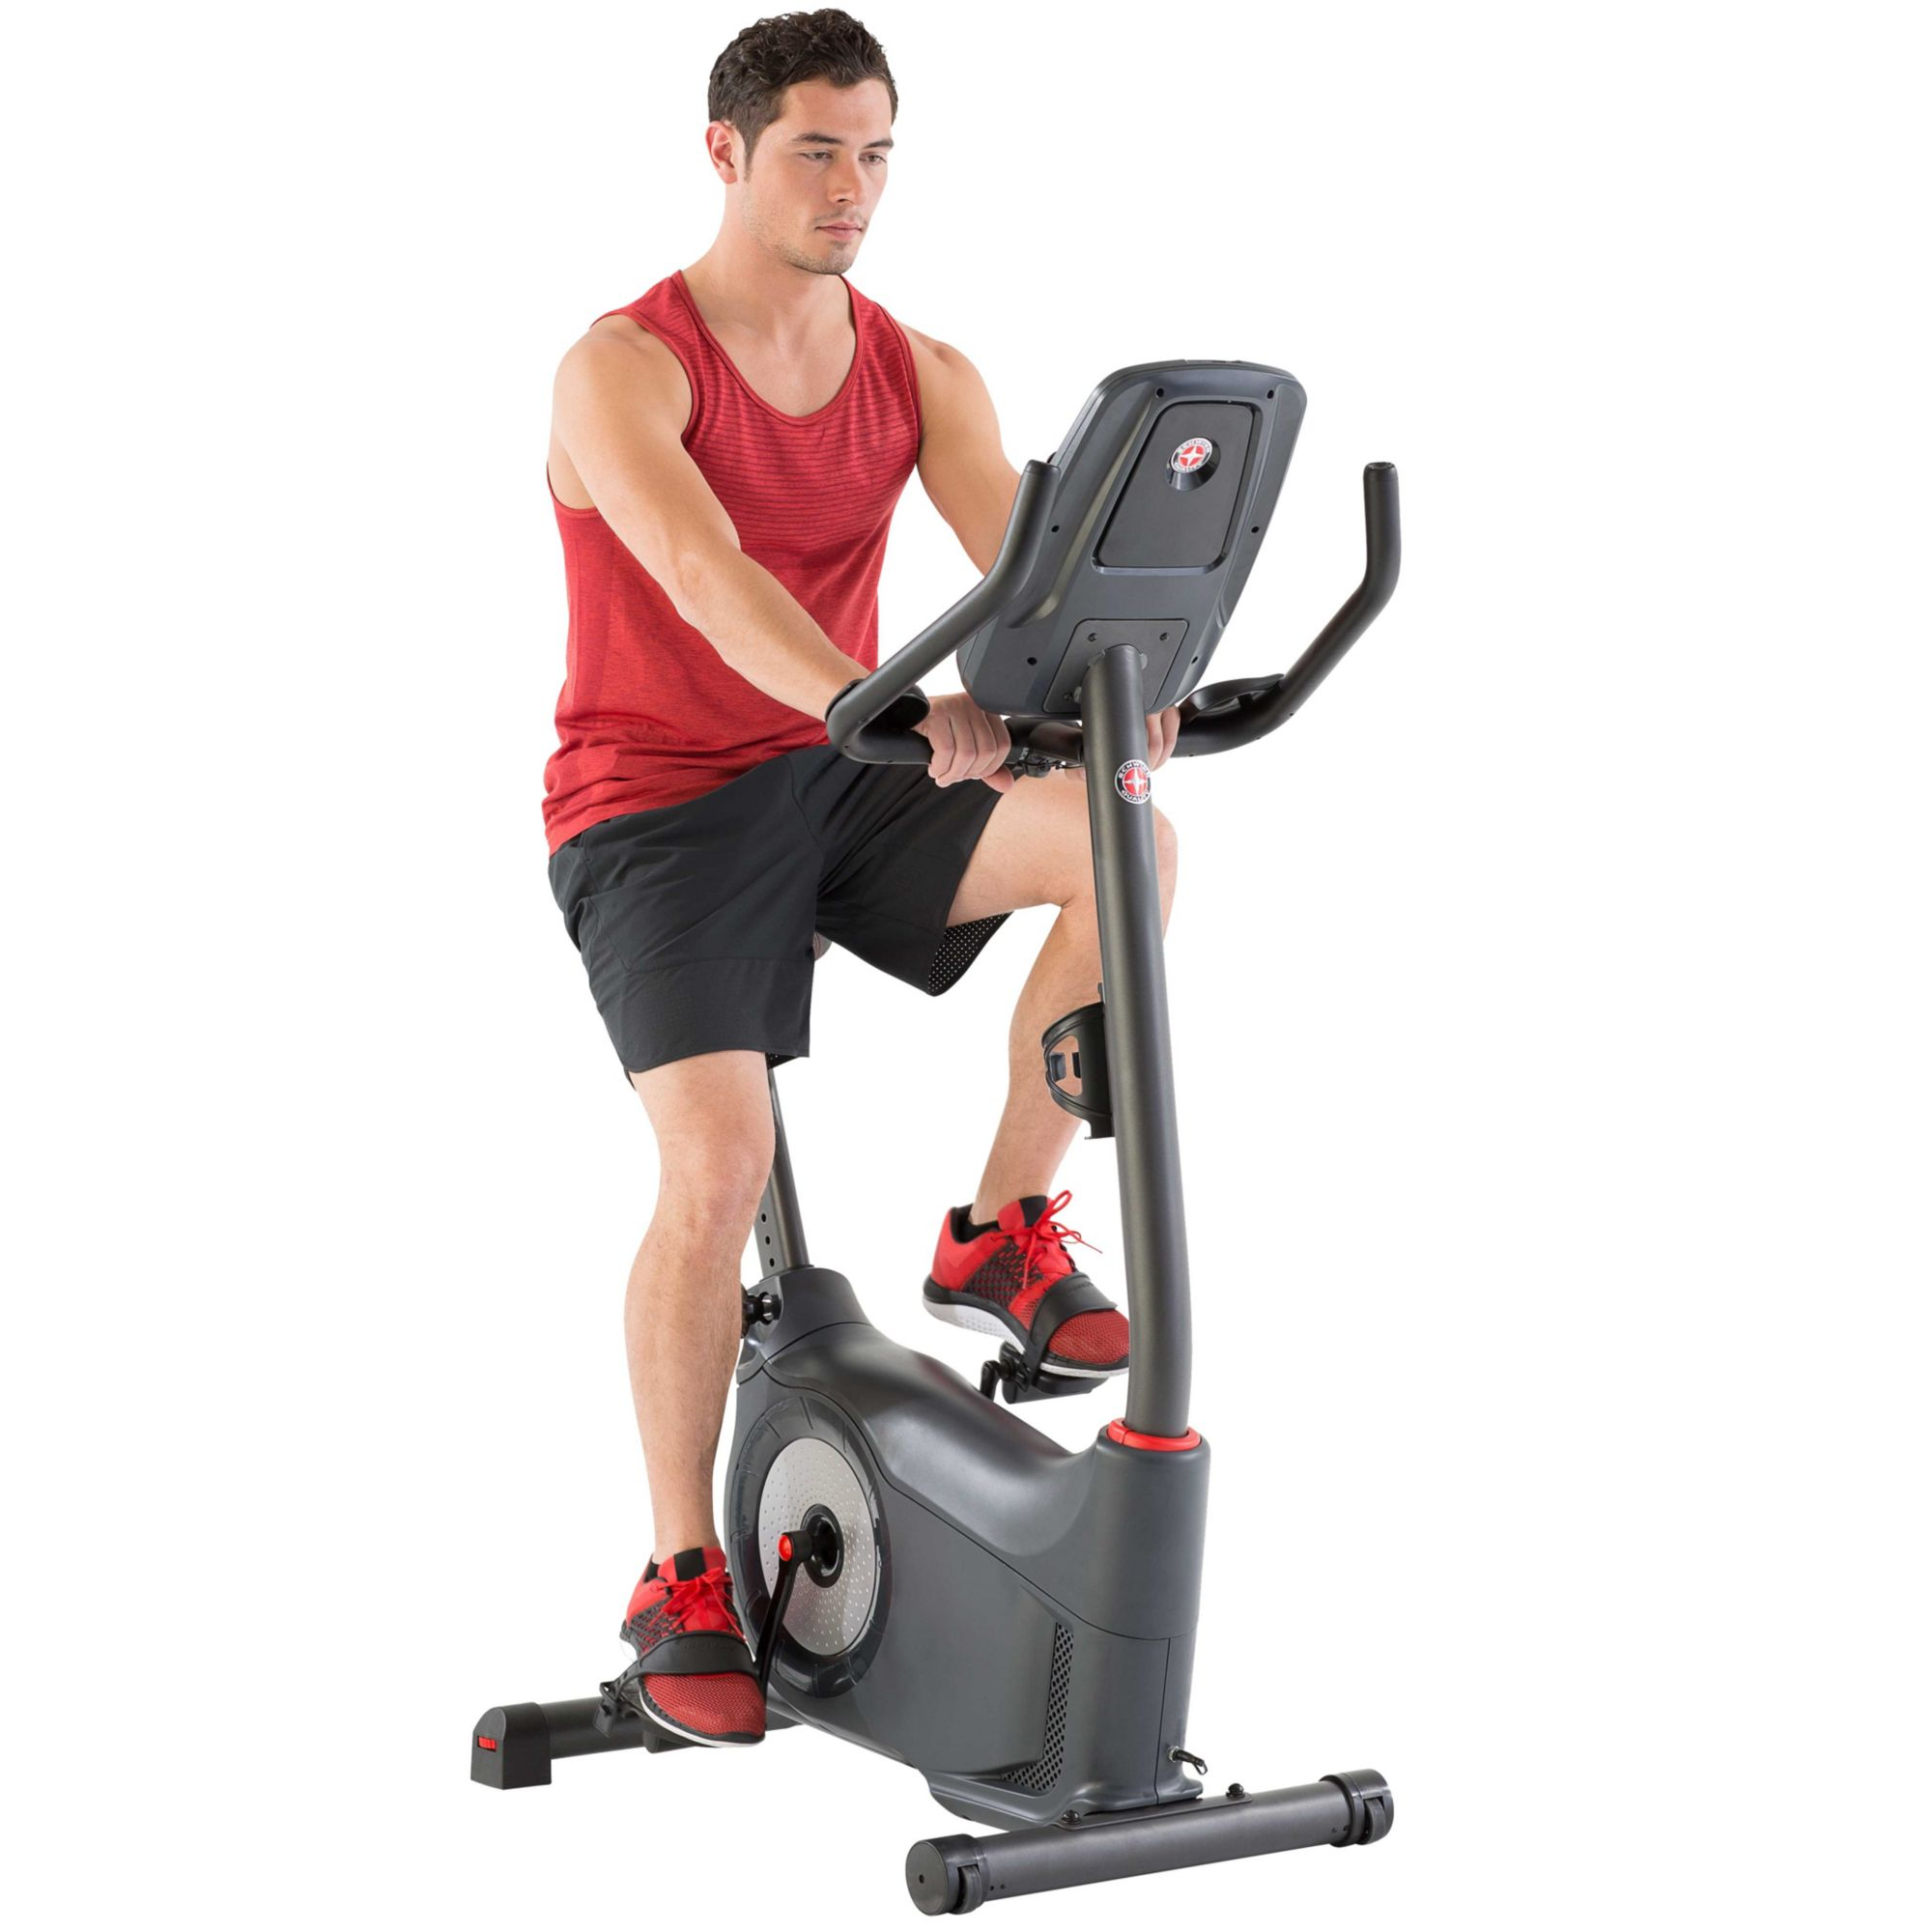 Exercise Stationary Bikes Best Price Guarantee At Dick S